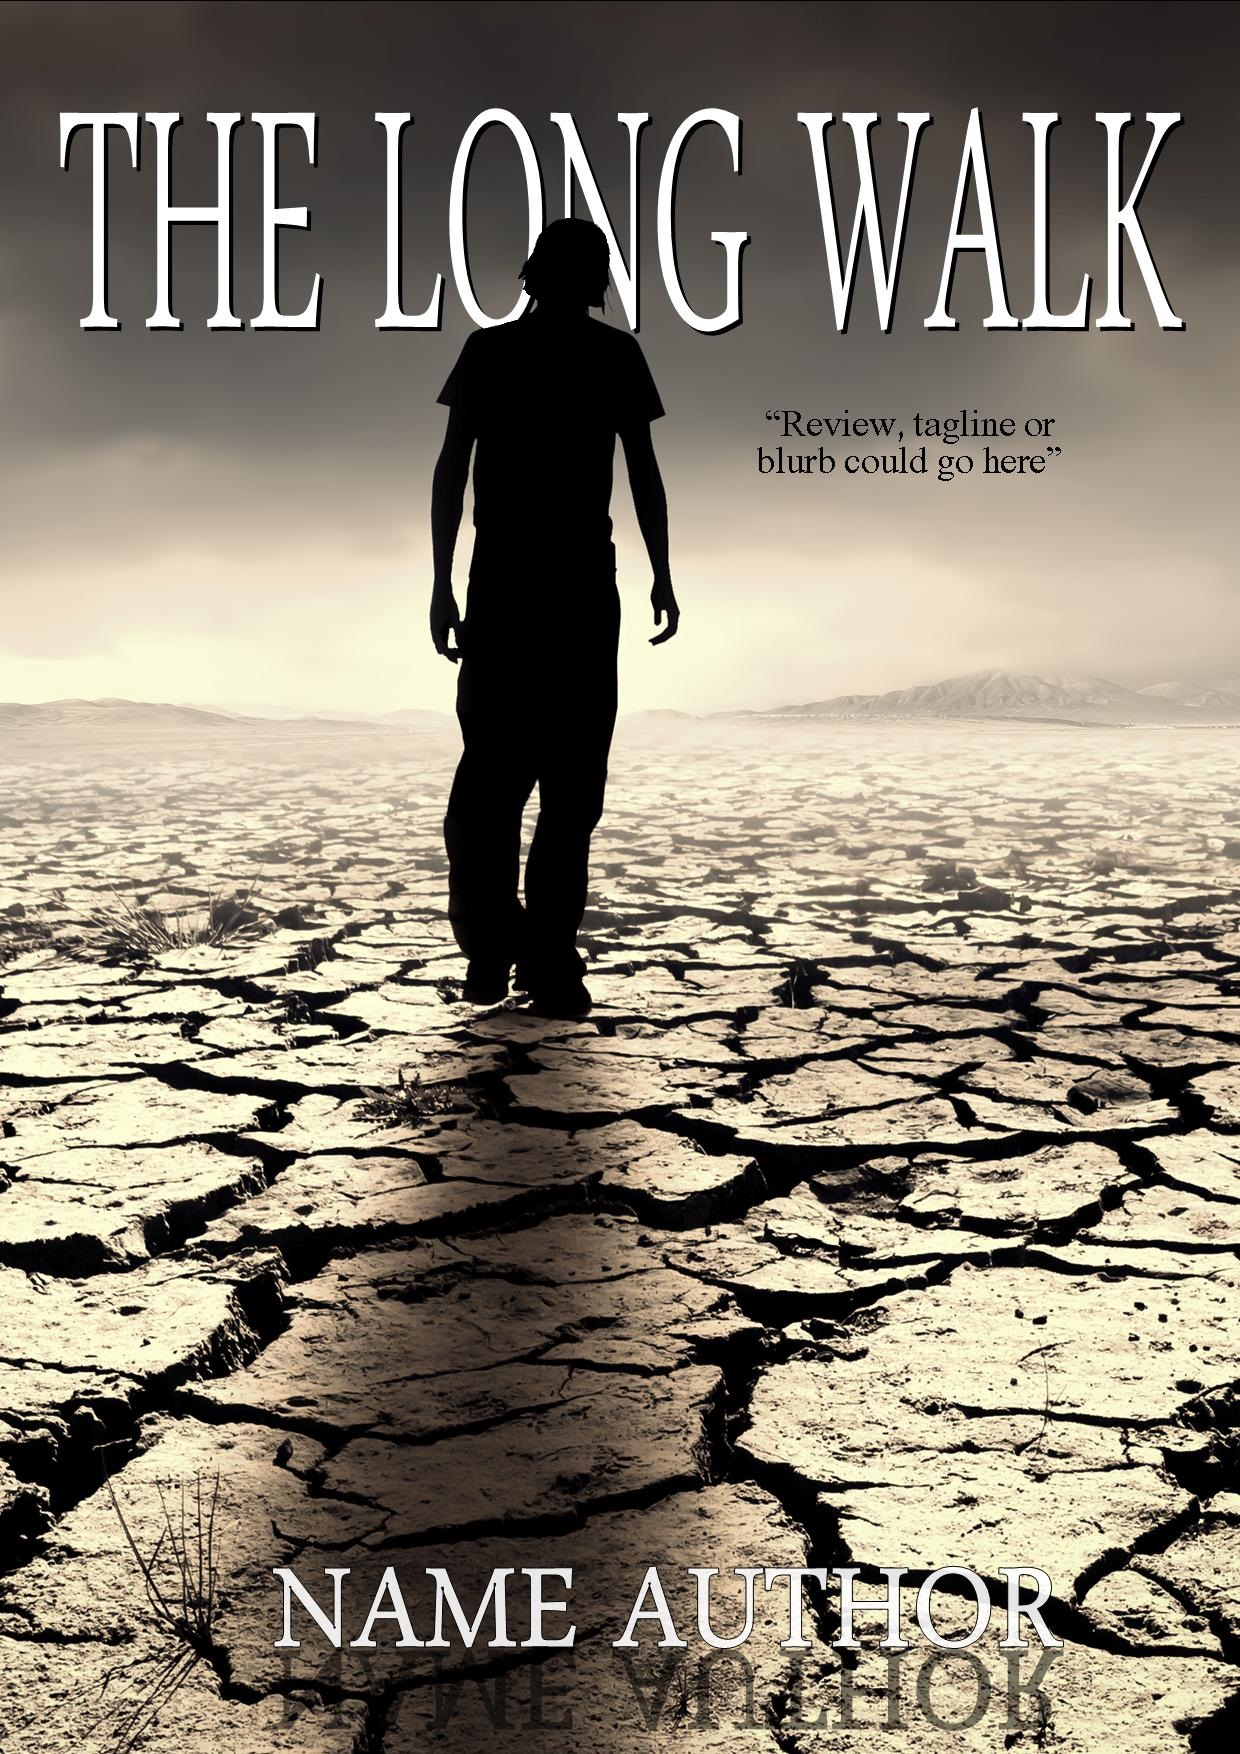 THELONGWALK